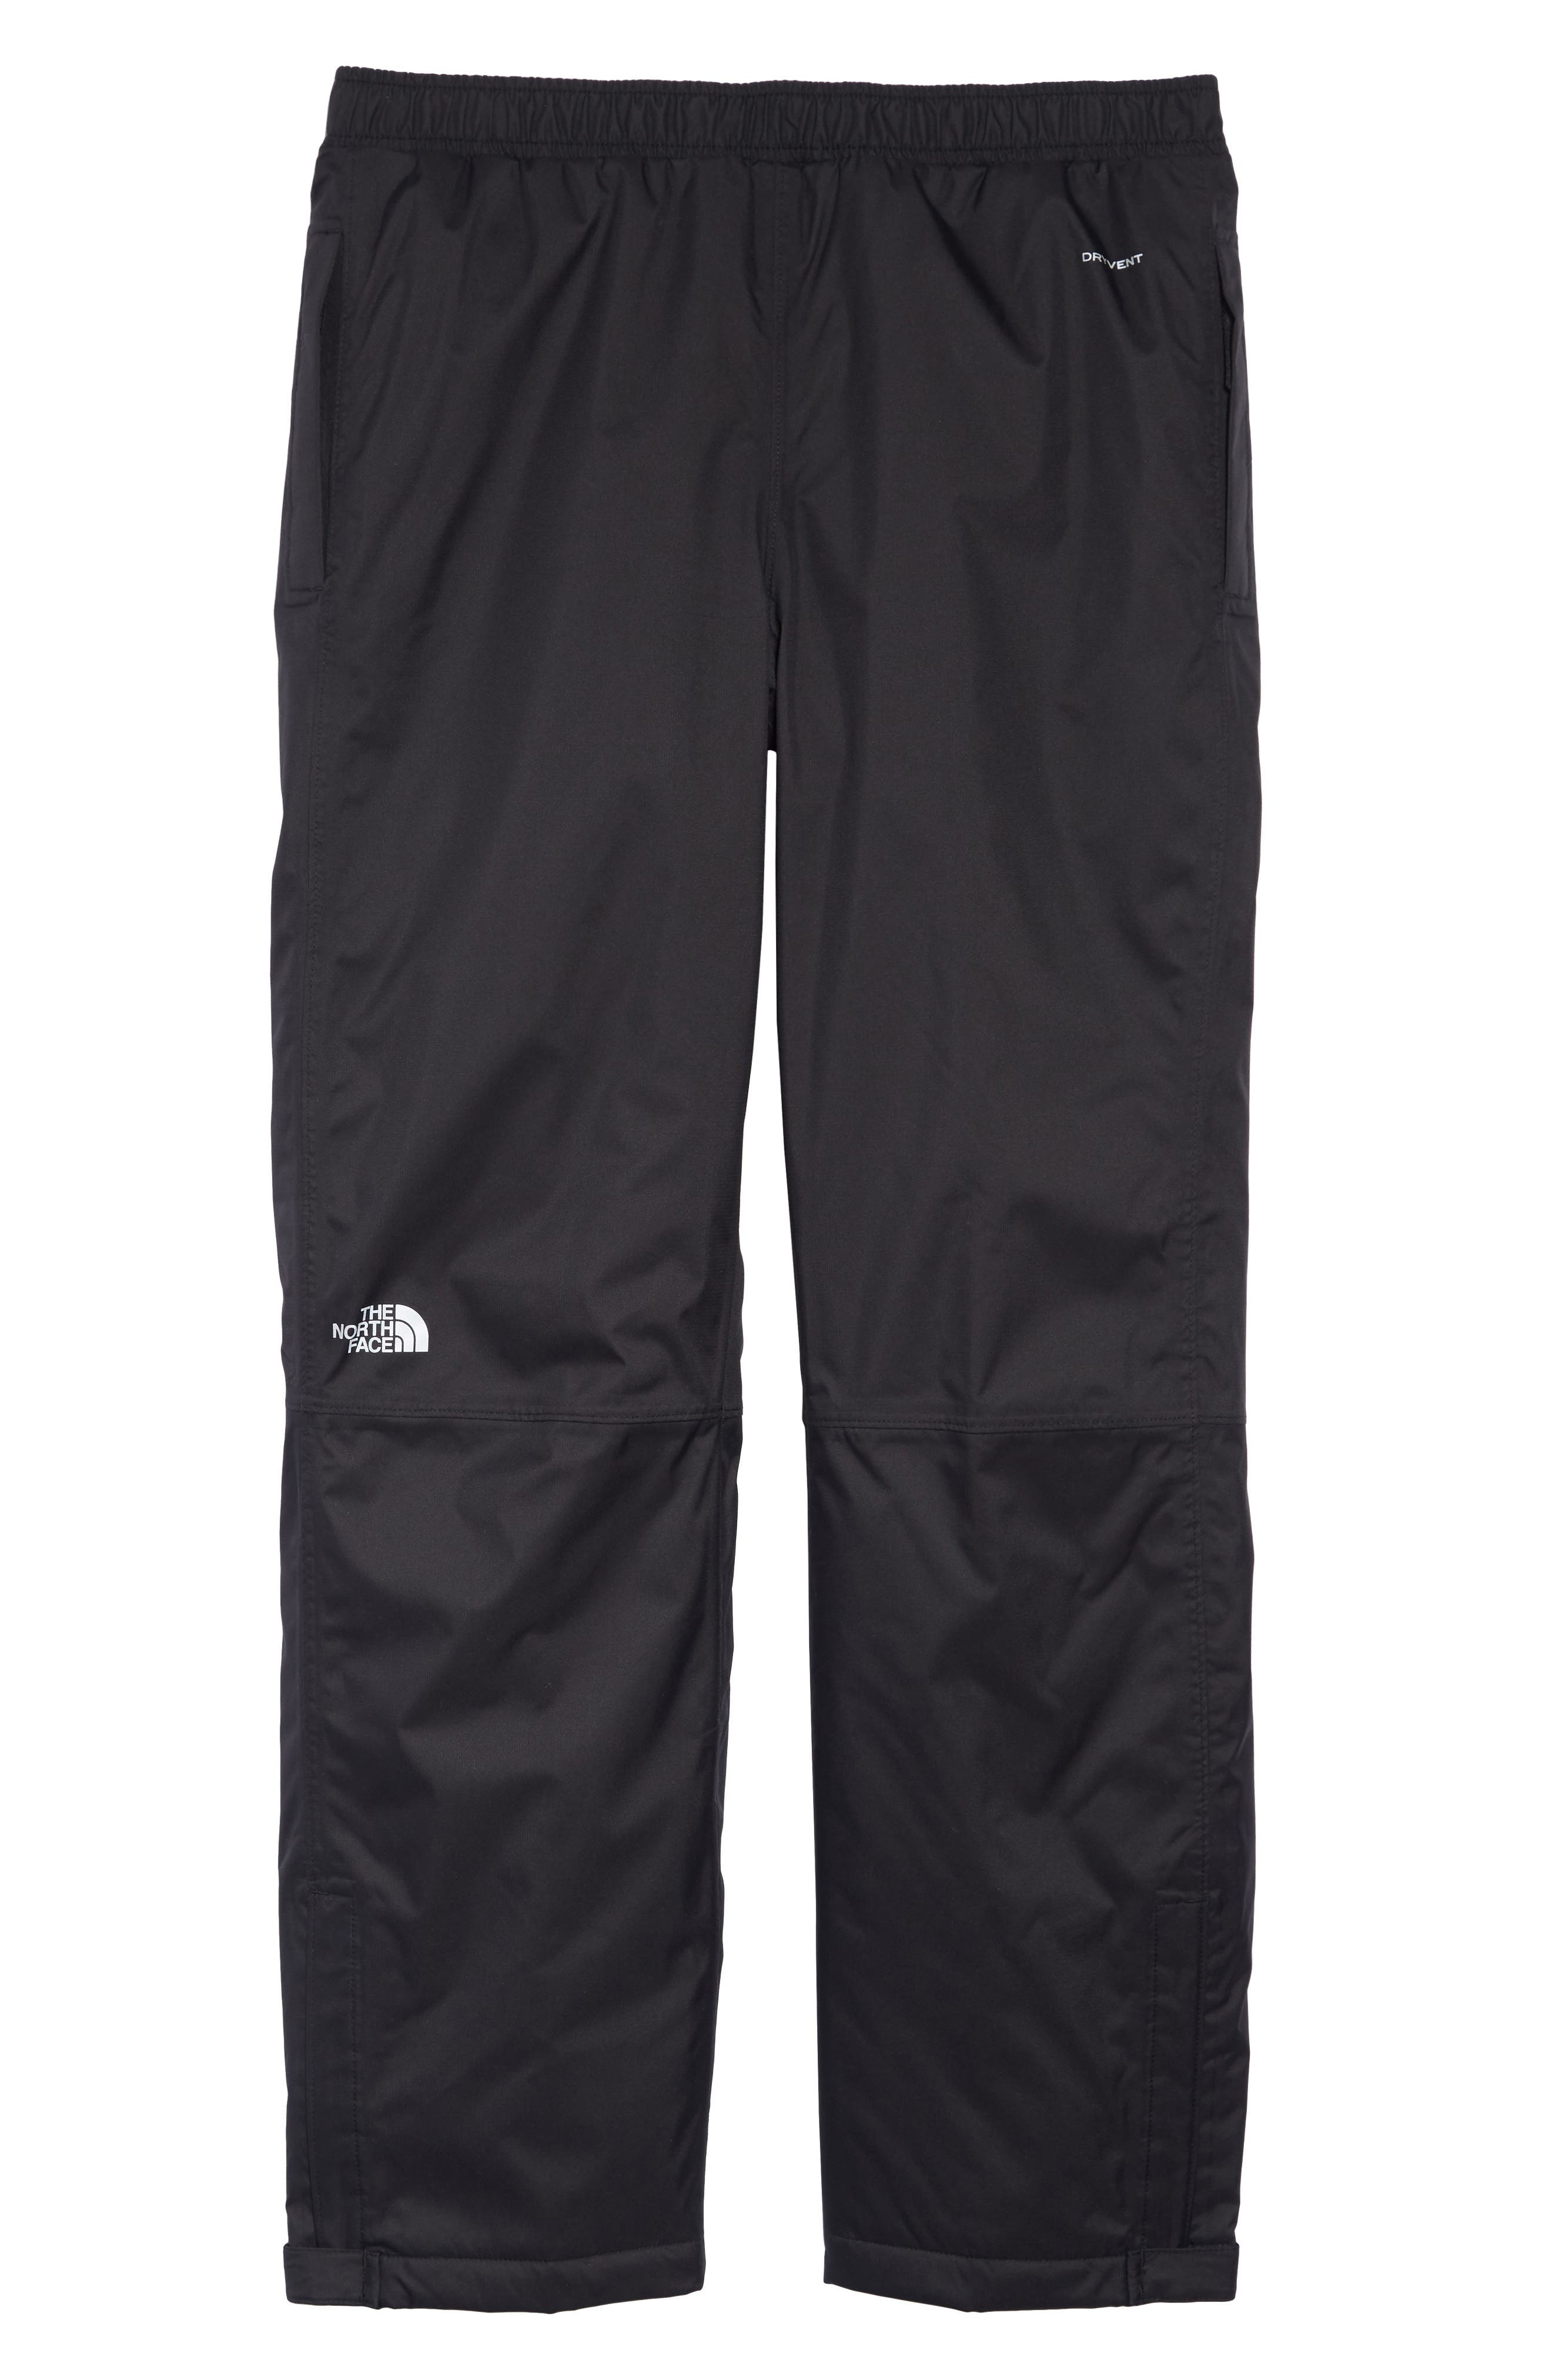 THE NORTH FACE Resolve Waterproof Pants, Main, color, TNF BLACK